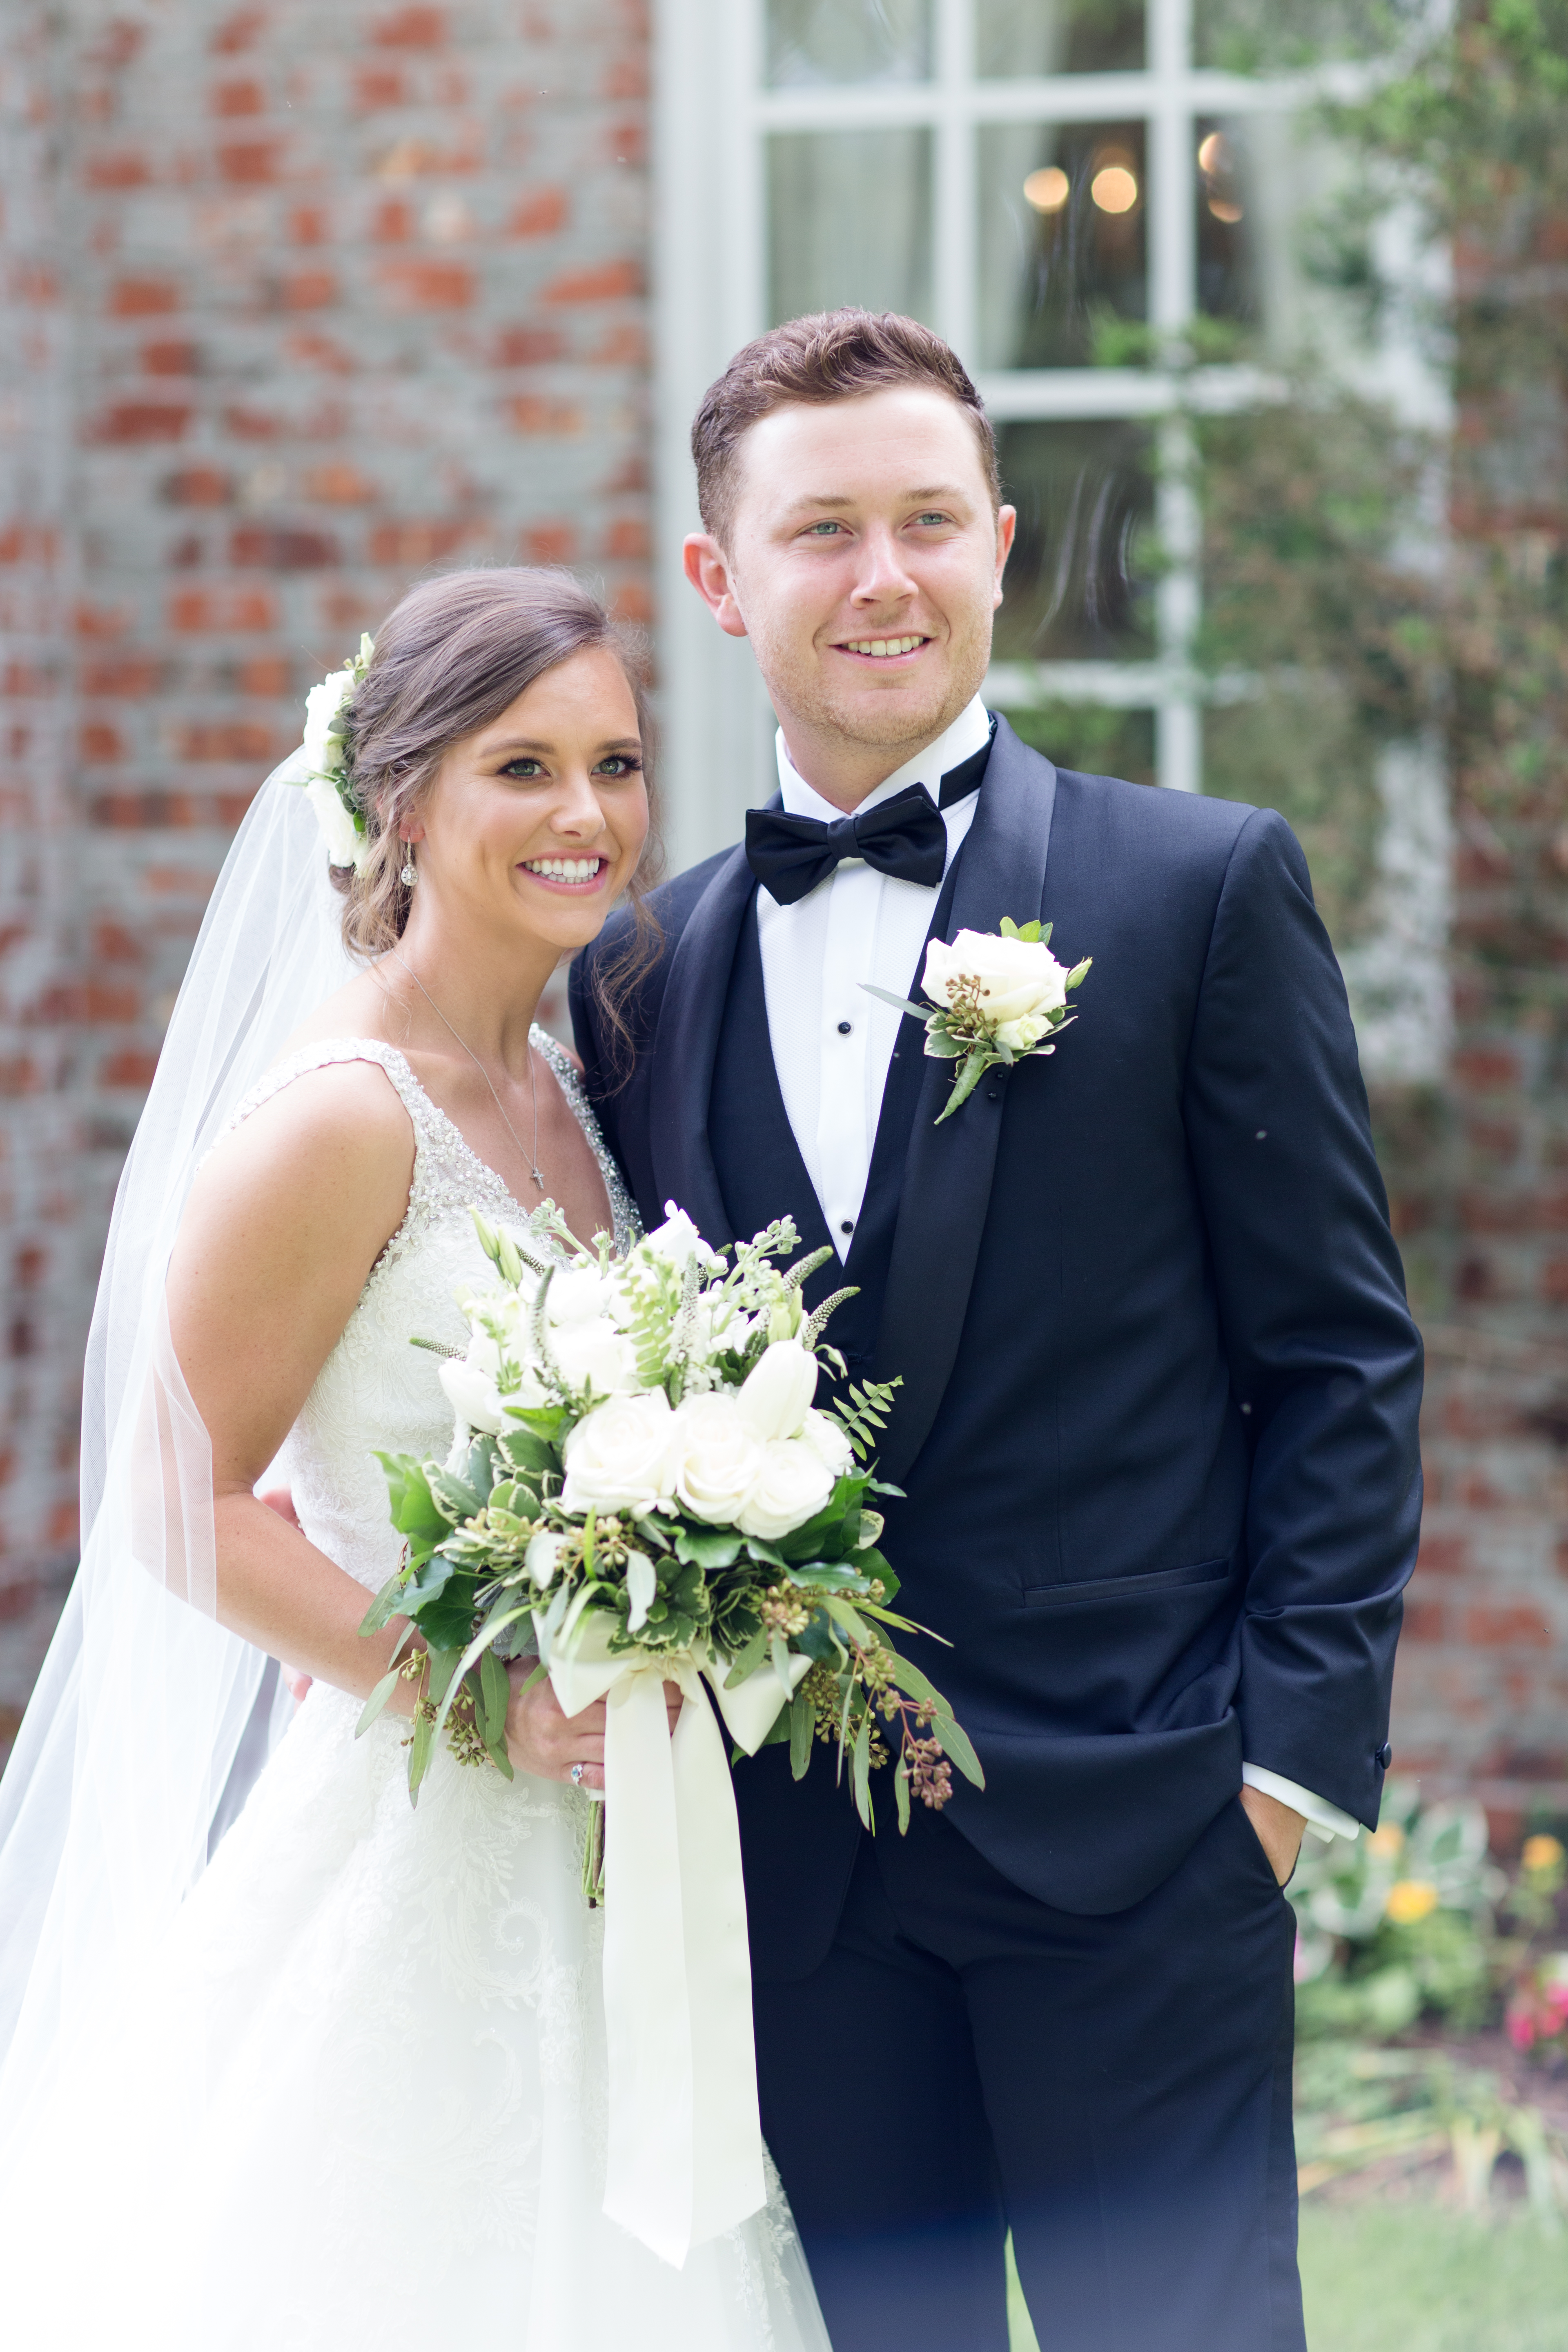 """Scotty McCreery shares his special day with the world with """"This Is It"""" music video"""